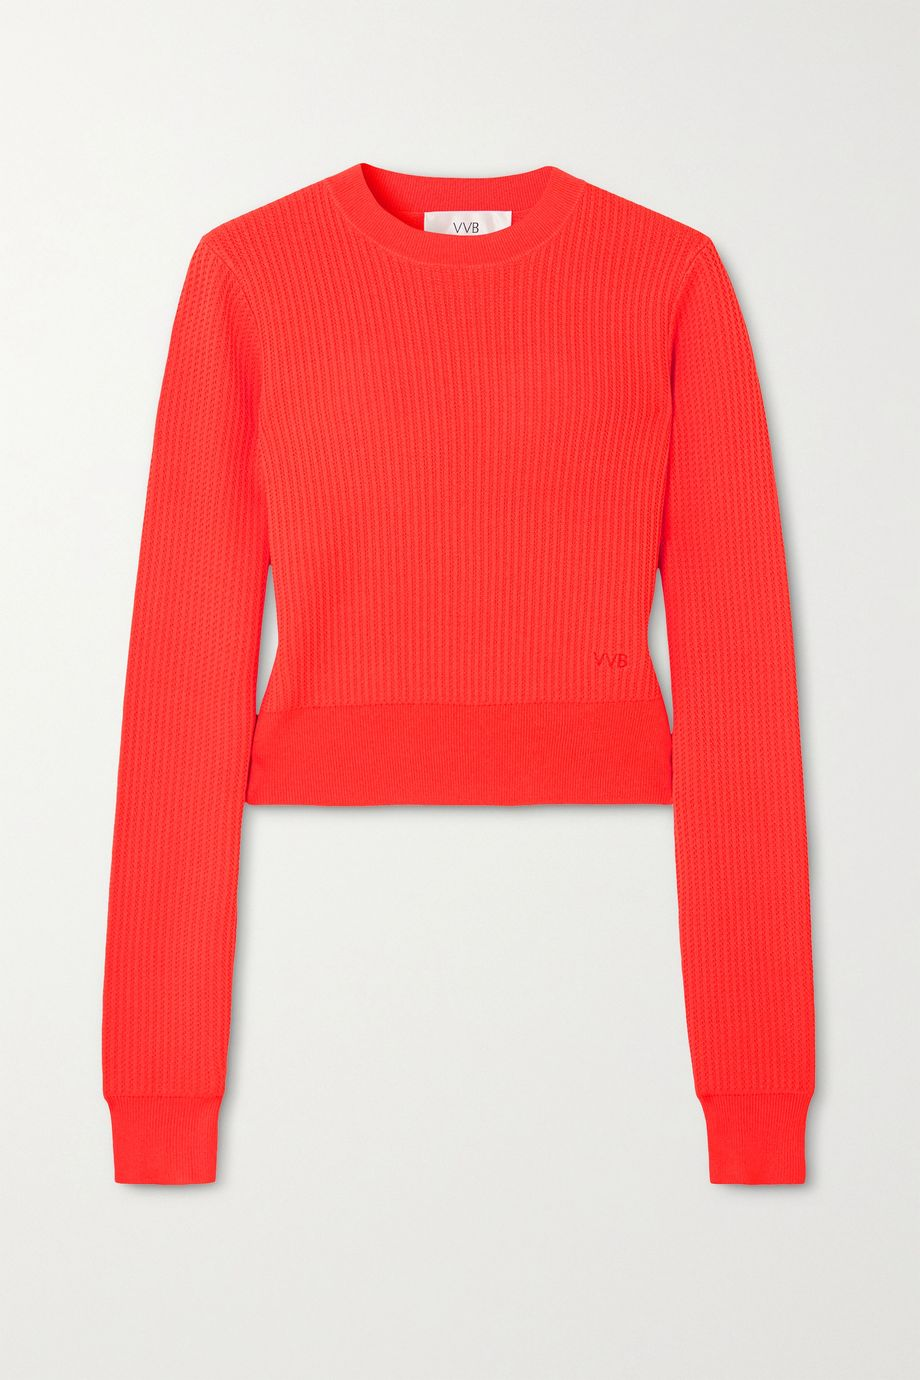 Victoria, Victoria Beckham Neon ribbed pointelle-knit sweater